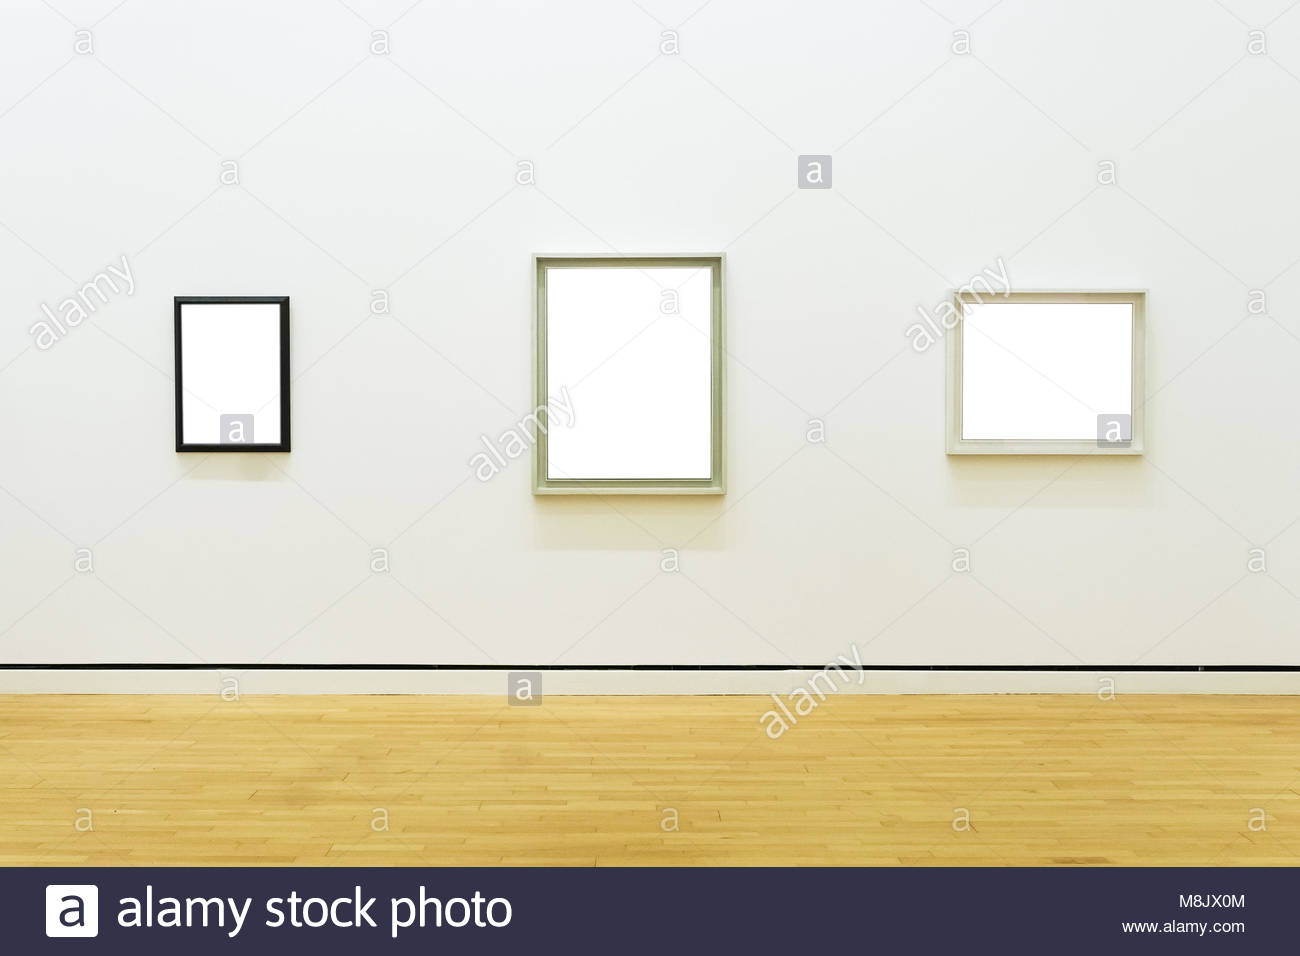 Mockup frame on floor stock photos mockup frame on floor stock three white clipped paintings with wooden carved frames hung on a clear wall stock jeuxipadfo Image collections